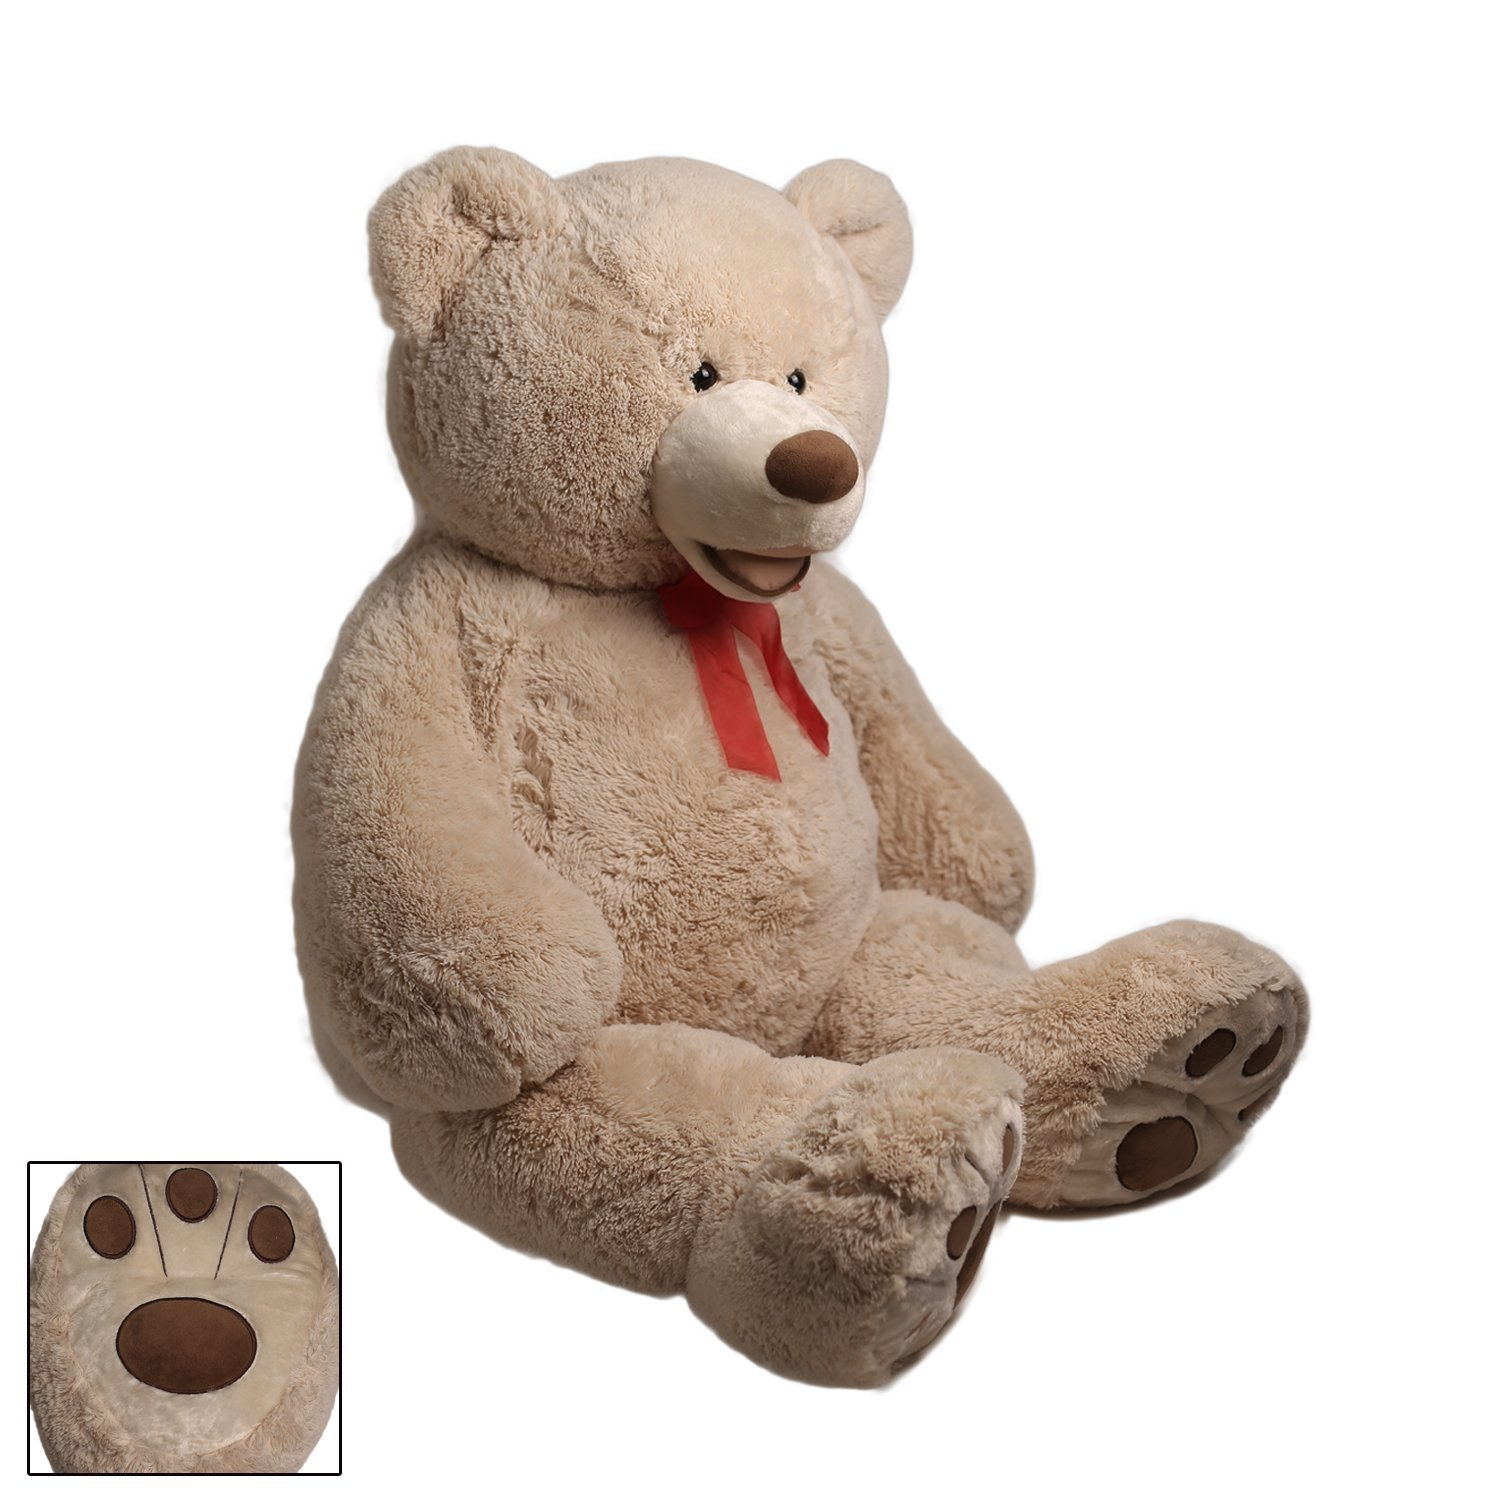 HollyHOME Teddy Bear Plush Giant Teddy Bears Stuffed Animals Teddy Bear Love Big Footprints 5 Feet Tan